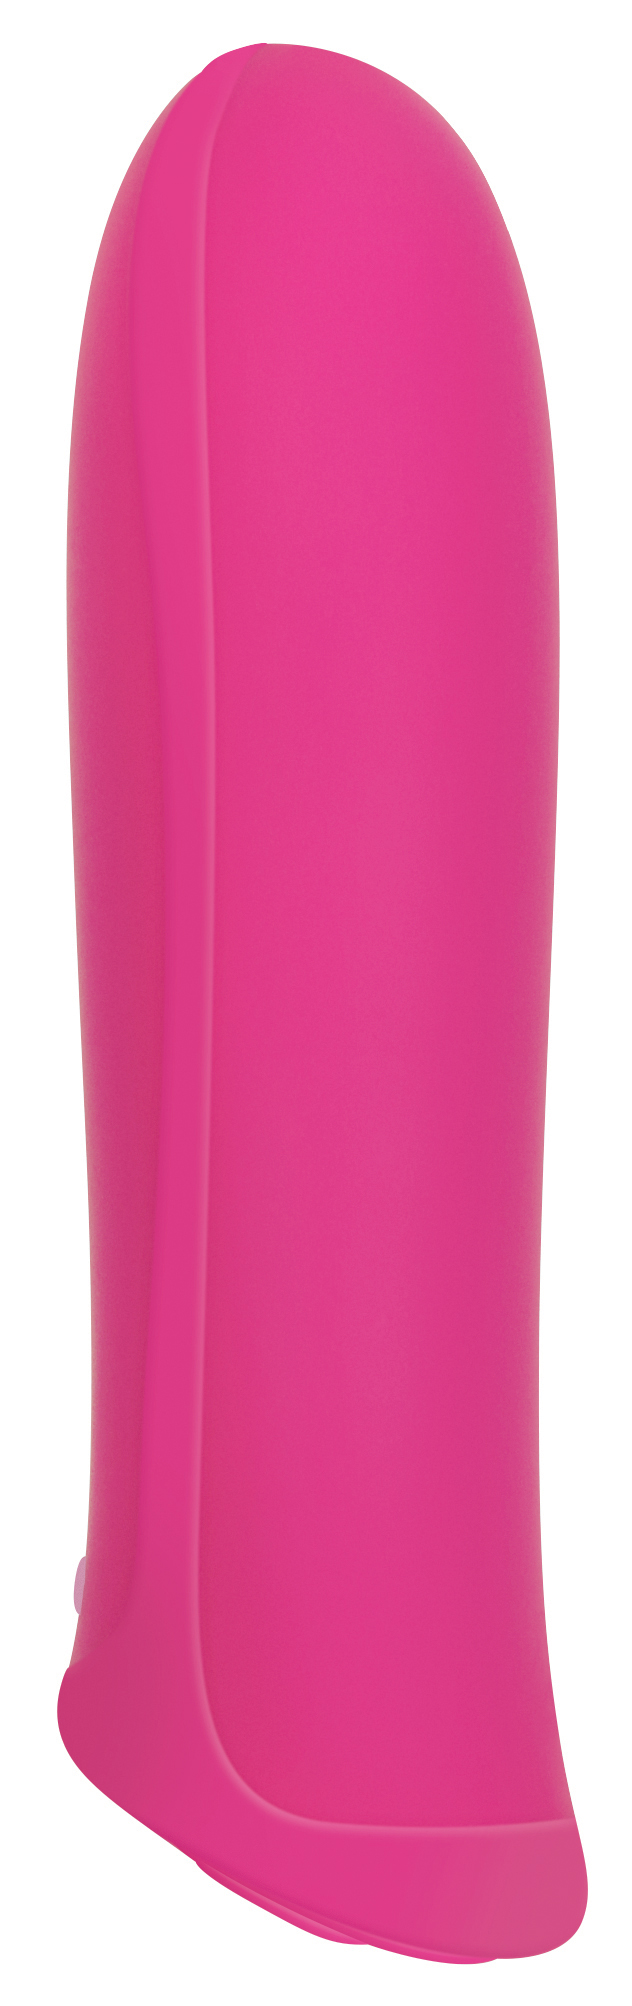 Evolved Novelties Pretty In Pink Rechargeable Vibrator